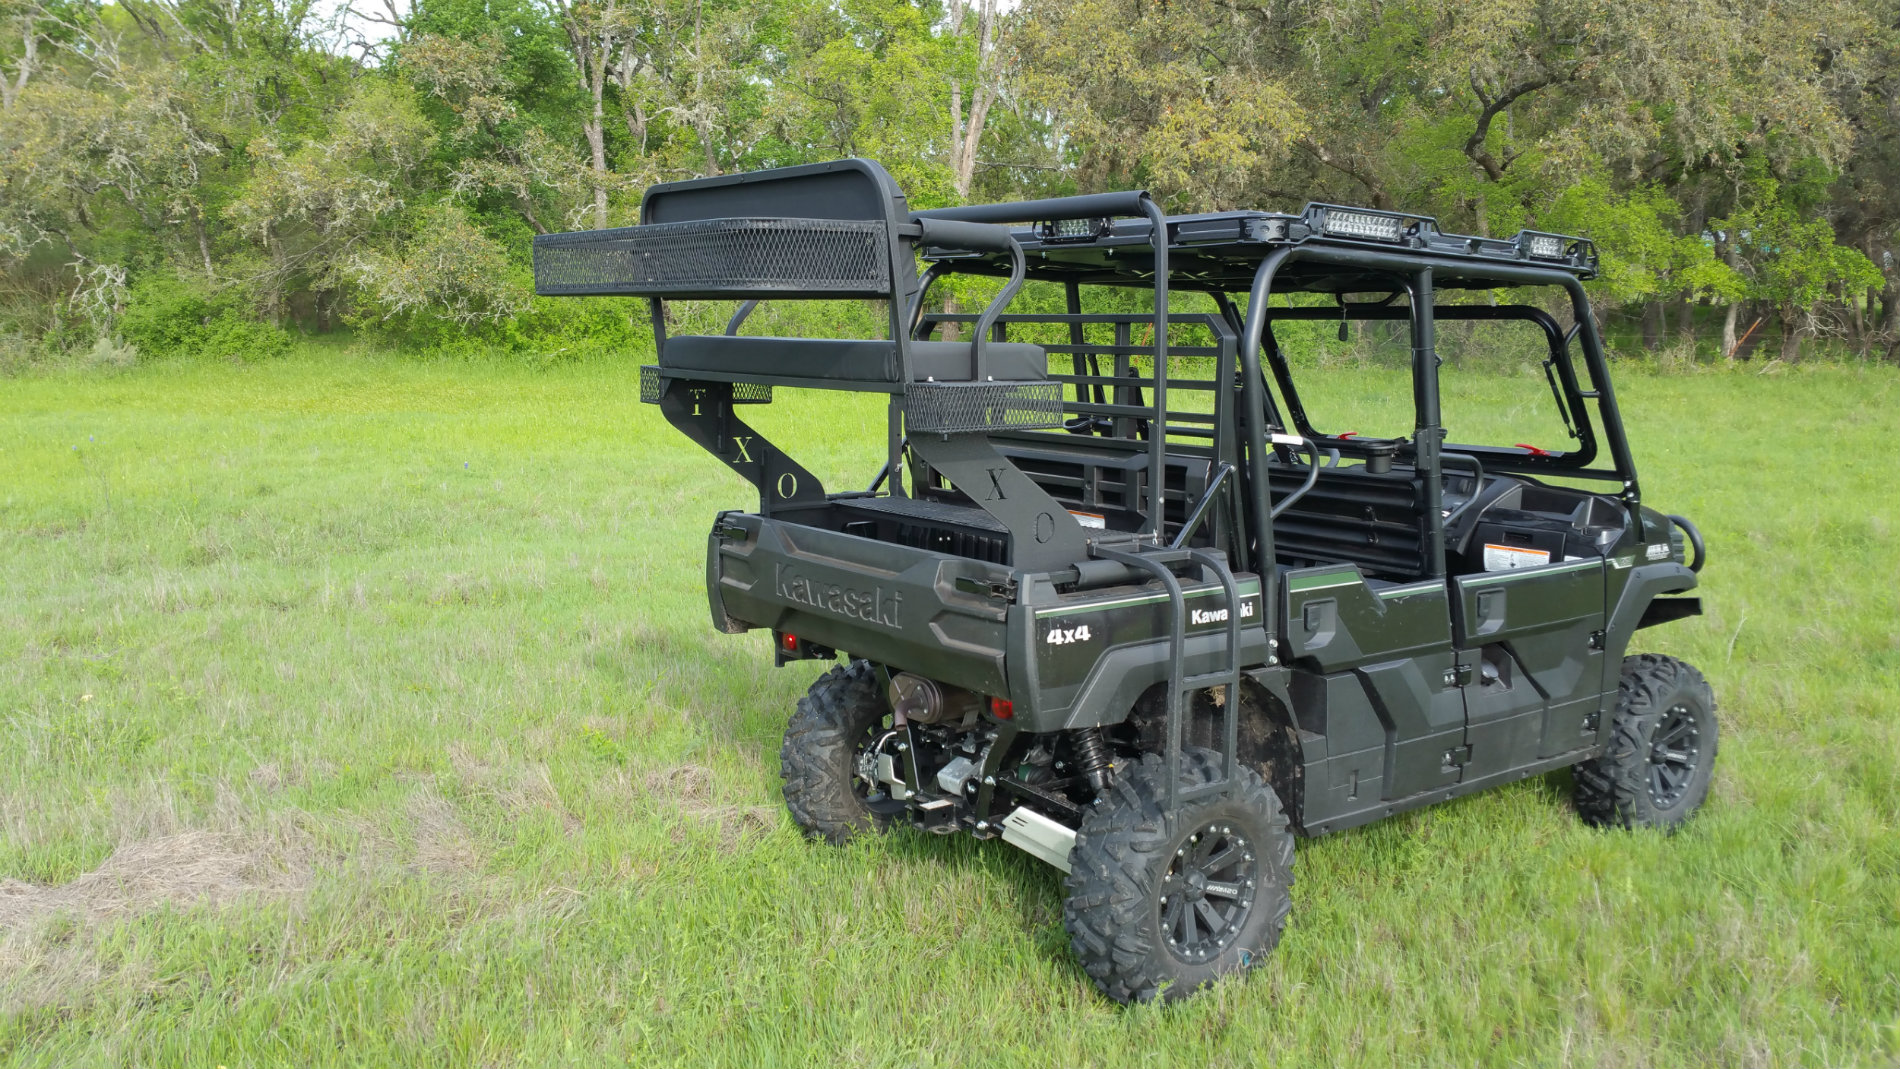 kawasaki-mule-pro-fxt-high-seat-bed-extension-rack.jpg